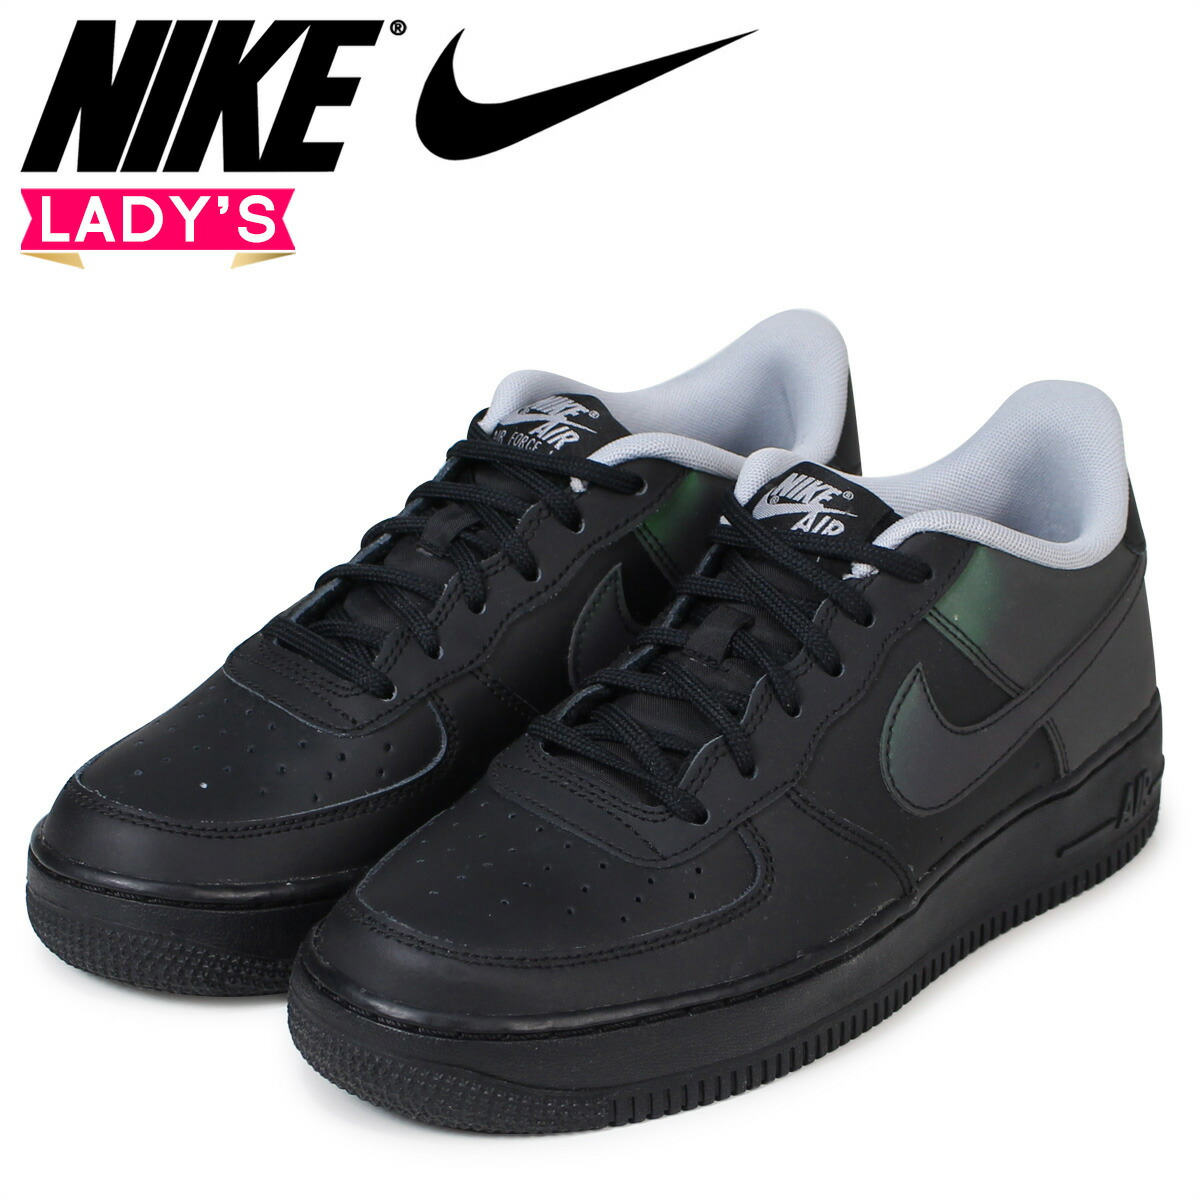 NIKE Nike air force 1 LV8 Lady's sneakers AIR FORCE 1 GS 820,438 009 shoes black black